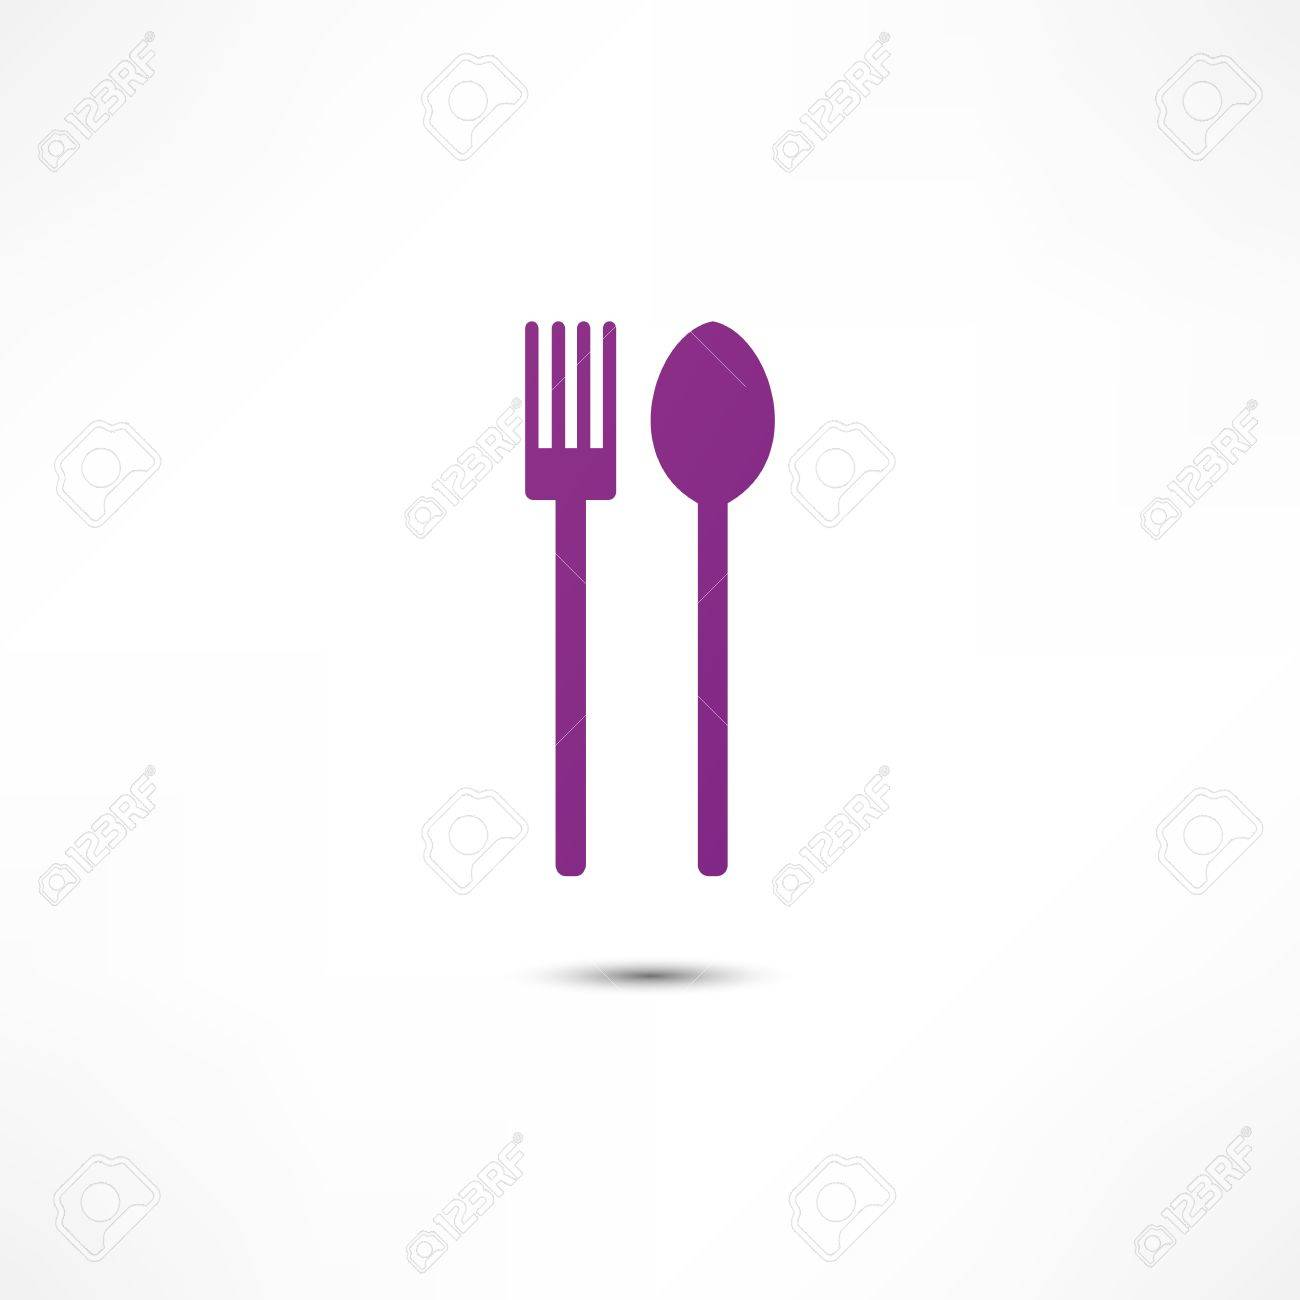 fork and spoon icon Stock Vector - 16795634